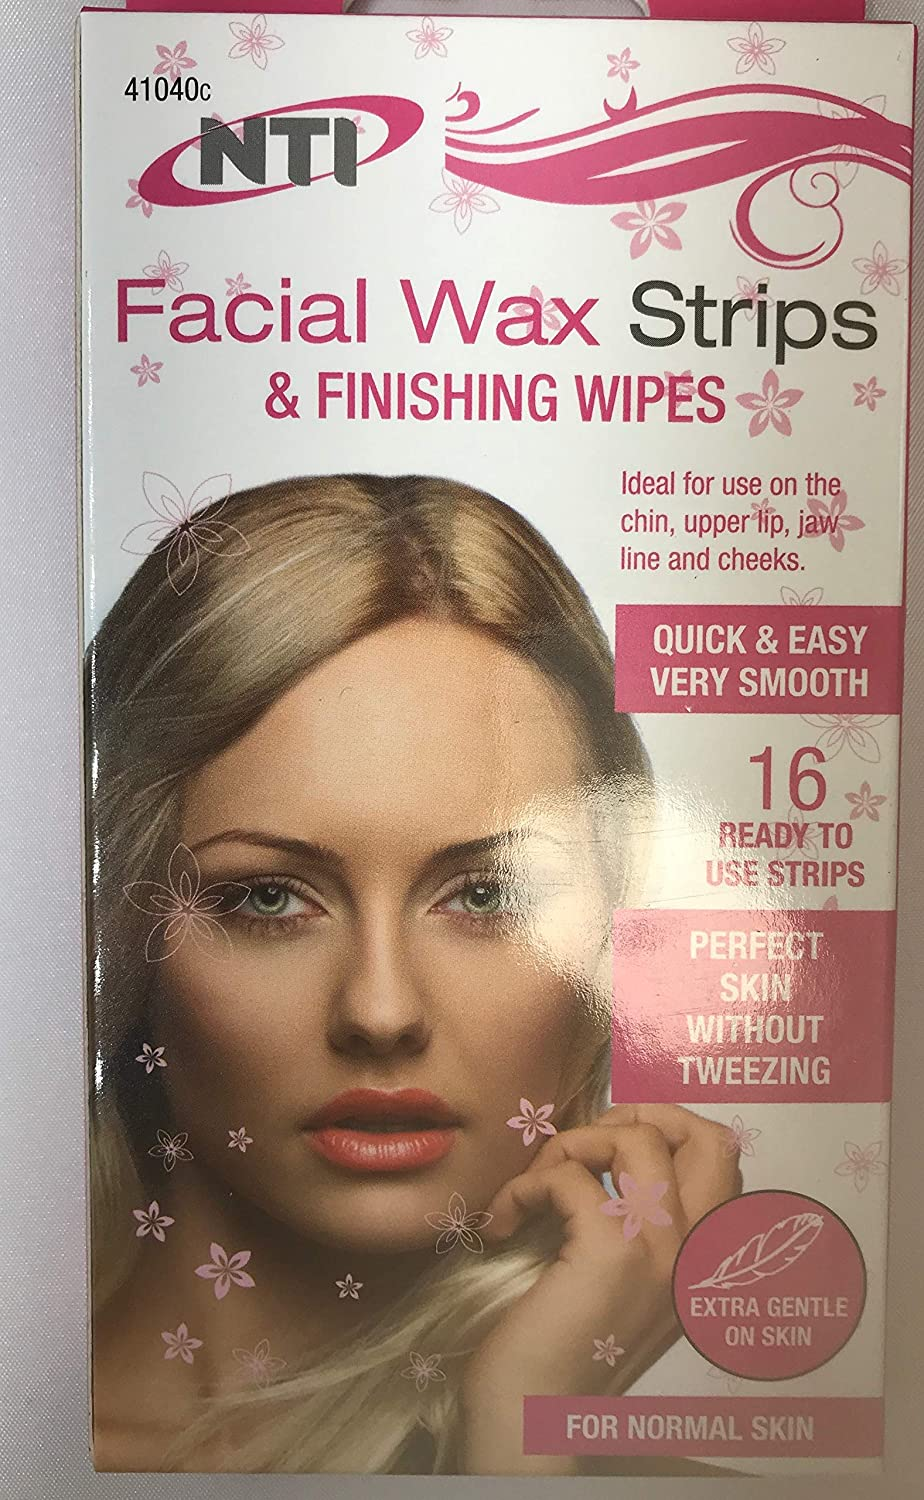 Facial WAXING Strips Wax Strips & Finishing Wipes Naturals for Normal Skin Great for Chin Upper Lip JAW LINE and Cheeks Very Smooth - Pack of 16 NTI